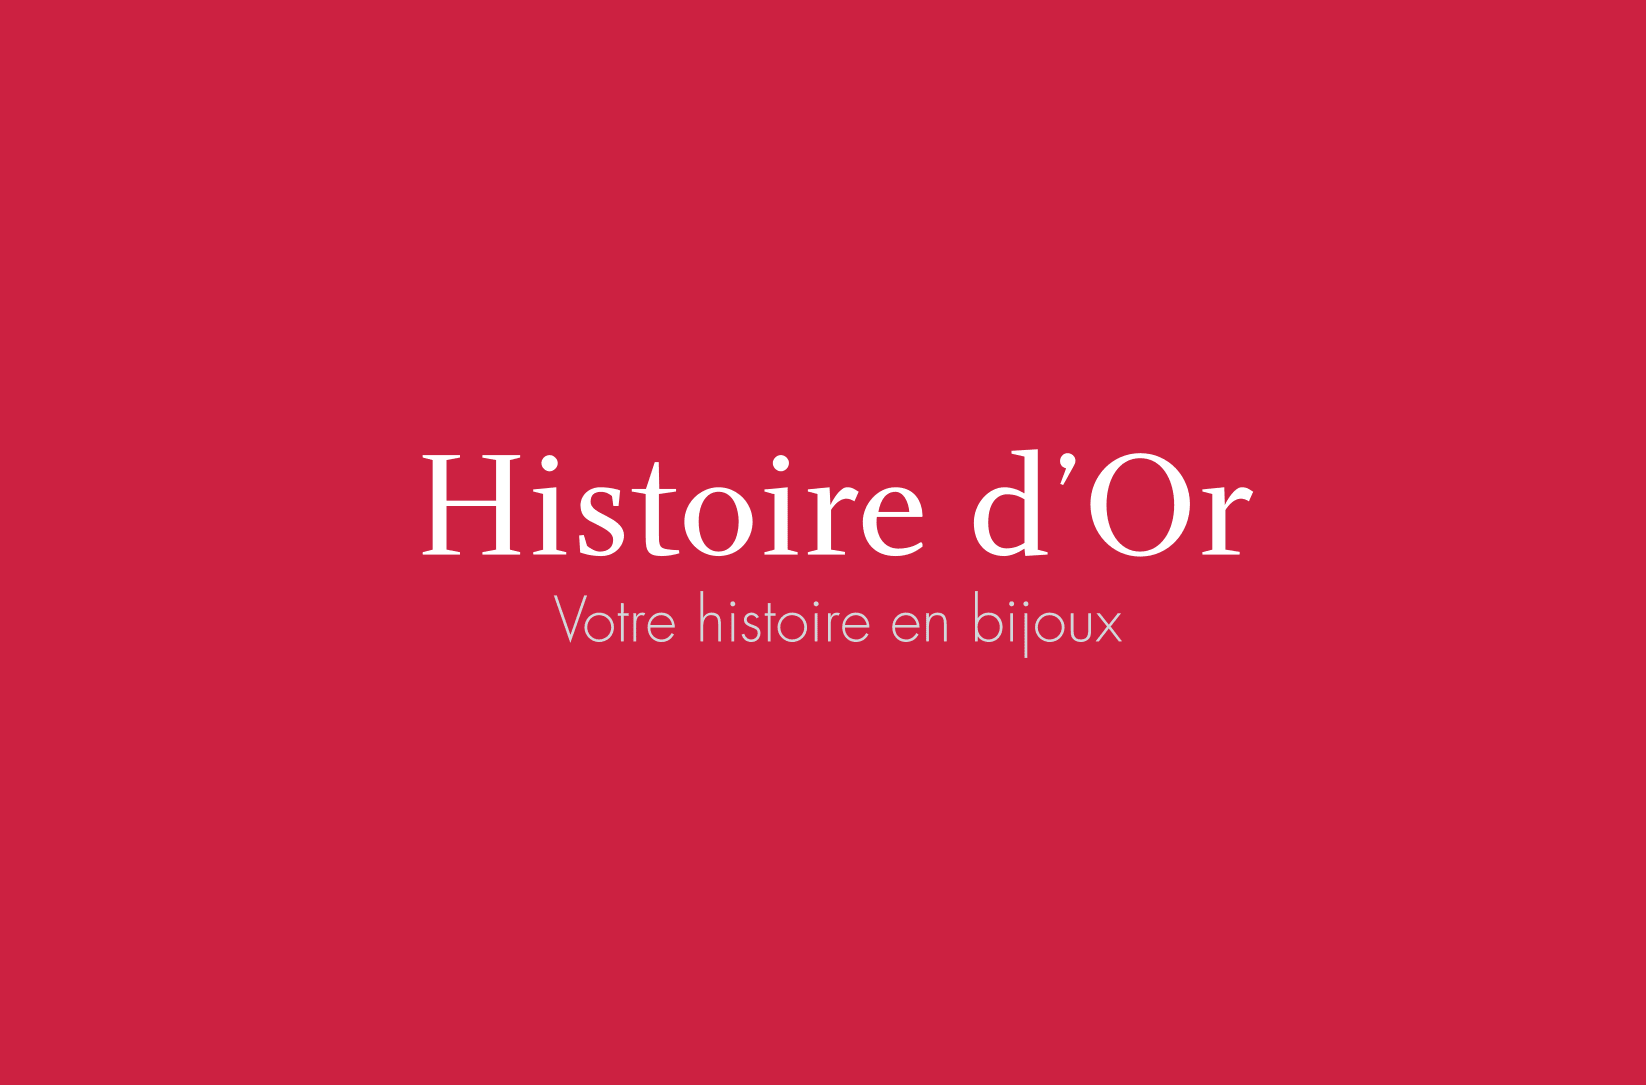 Comment contacter Histoire d'Or ?